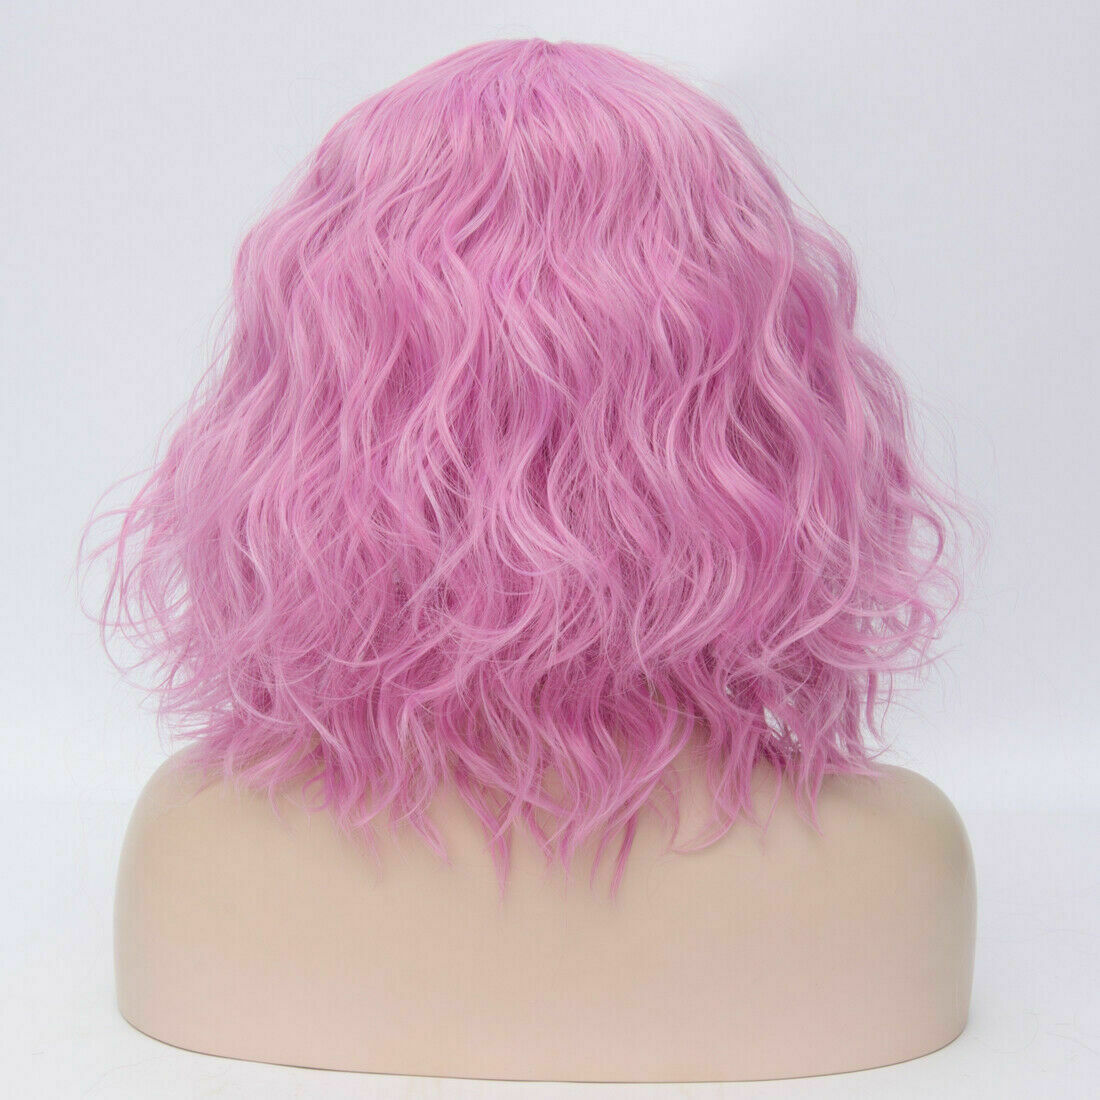 Lolita-Women-039-s-Short-Curly-Anime-Synthetic-Hair-Heat-Resistant-Cosplay-Party-Wig miniature 71